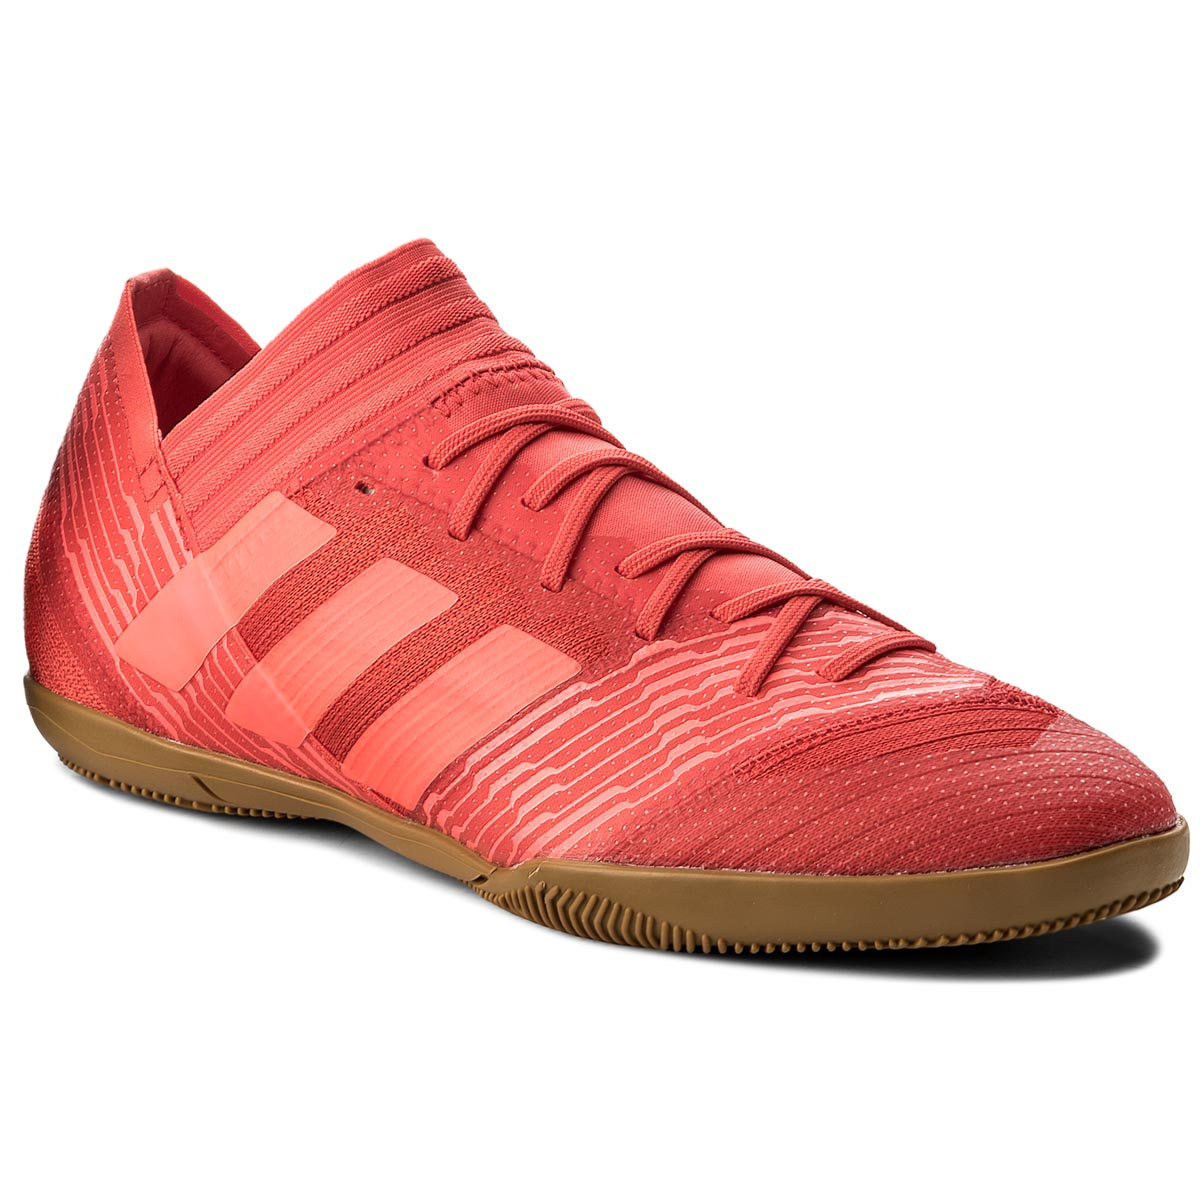 Buty adidas - Nemeziz Tango 17.3 In CP9112 Reacor/Redzes/Reacor